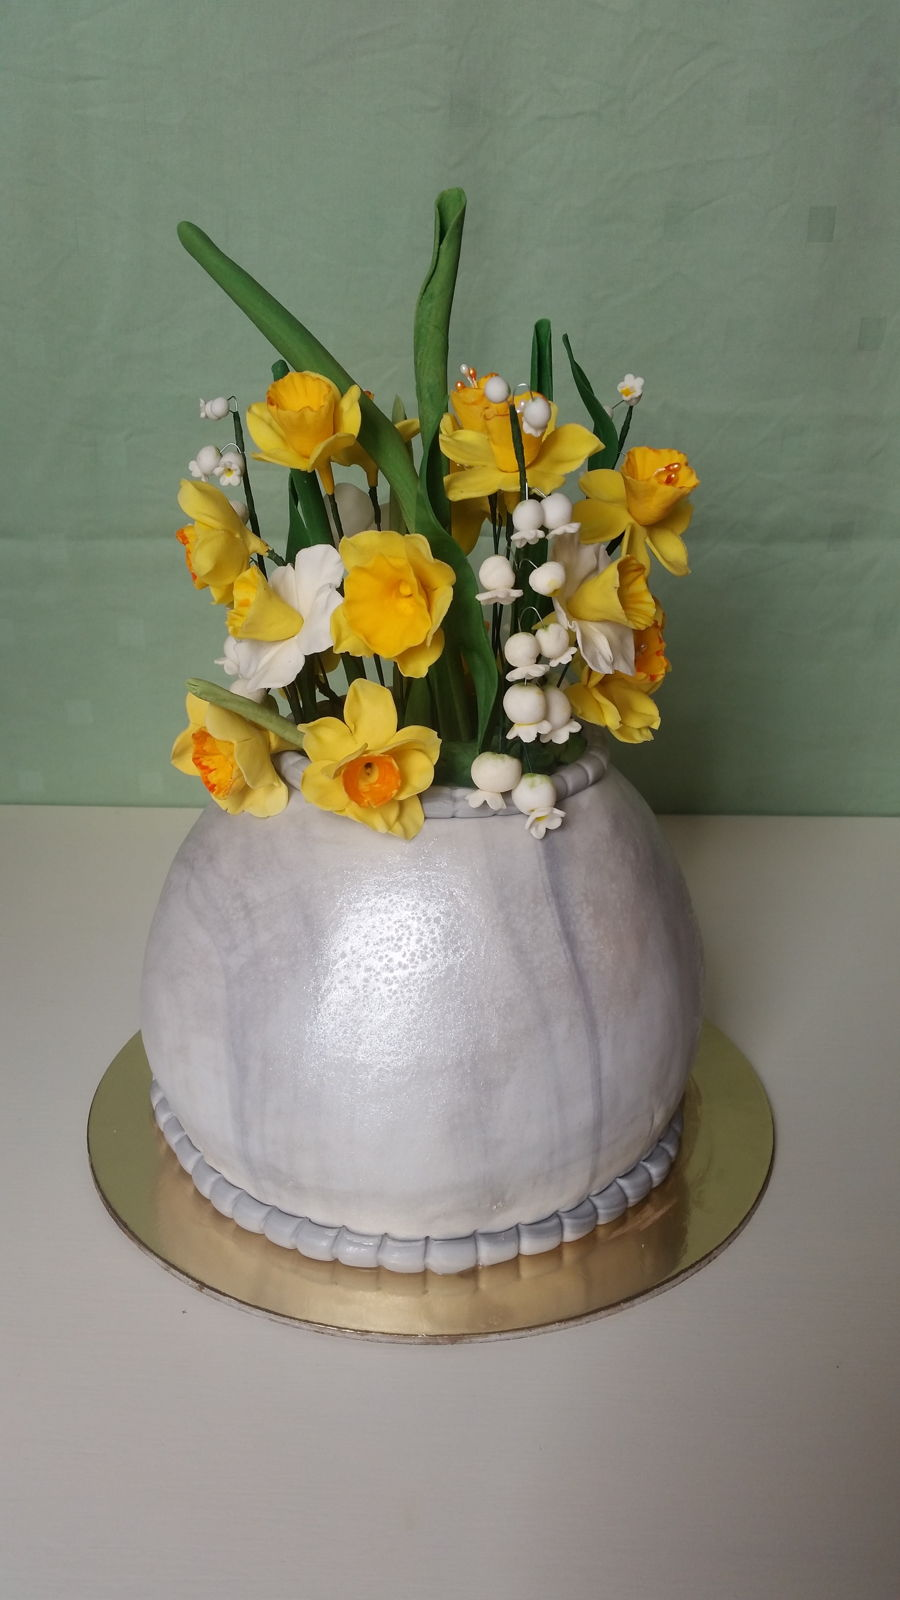 Cake vase with daffodils and lily of the valley cakecentral cake marbel vase with daffodils and lily of the valley flowers made by gum paste reviewsmspy